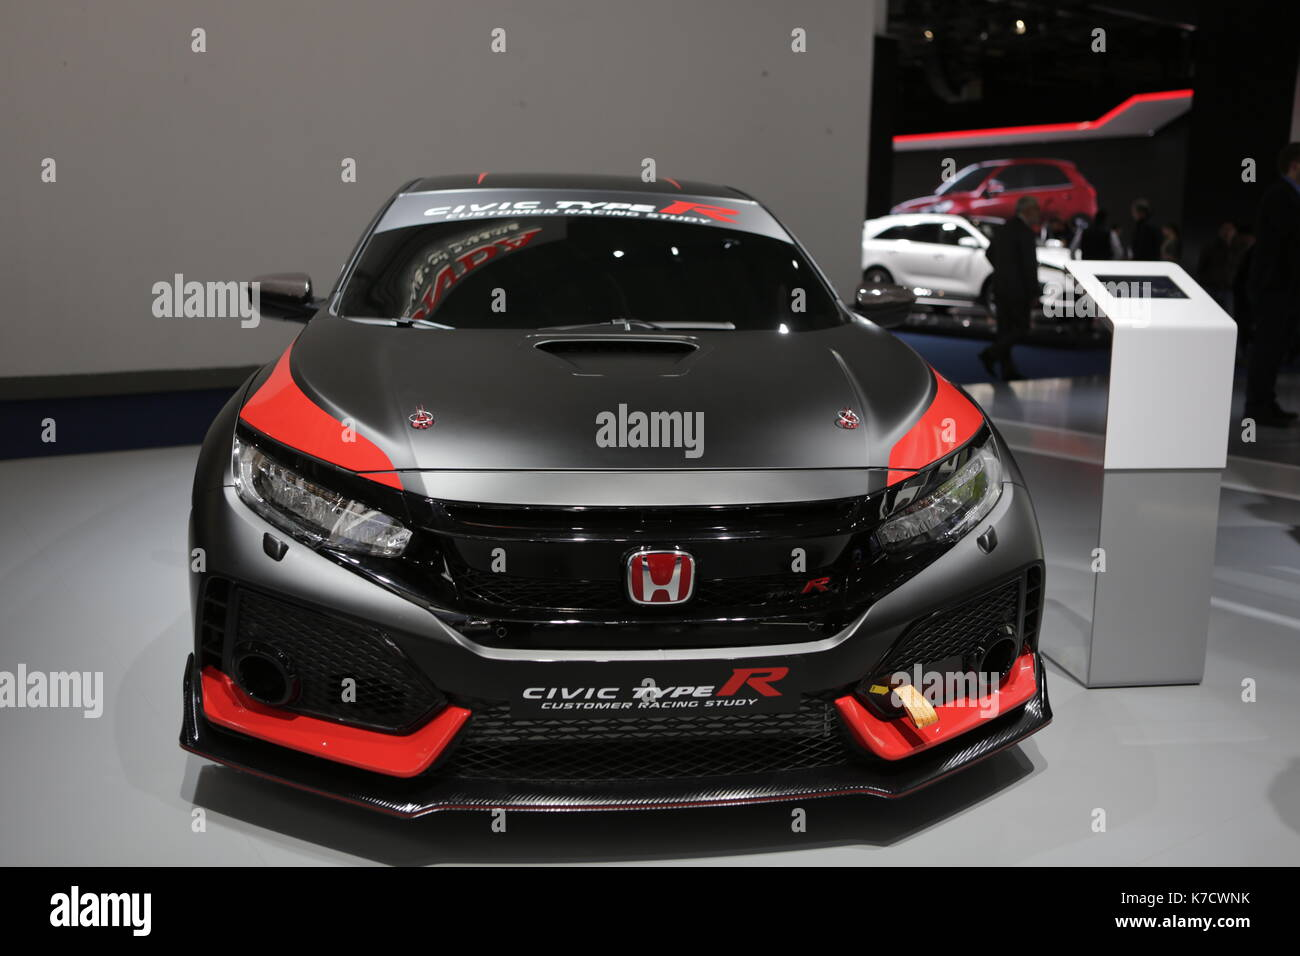 The Japanese Car Manufacturer Honda Presents Civic Type R At 67 IAA Internationale Automobil Ausstellung Opened In Frankfurt